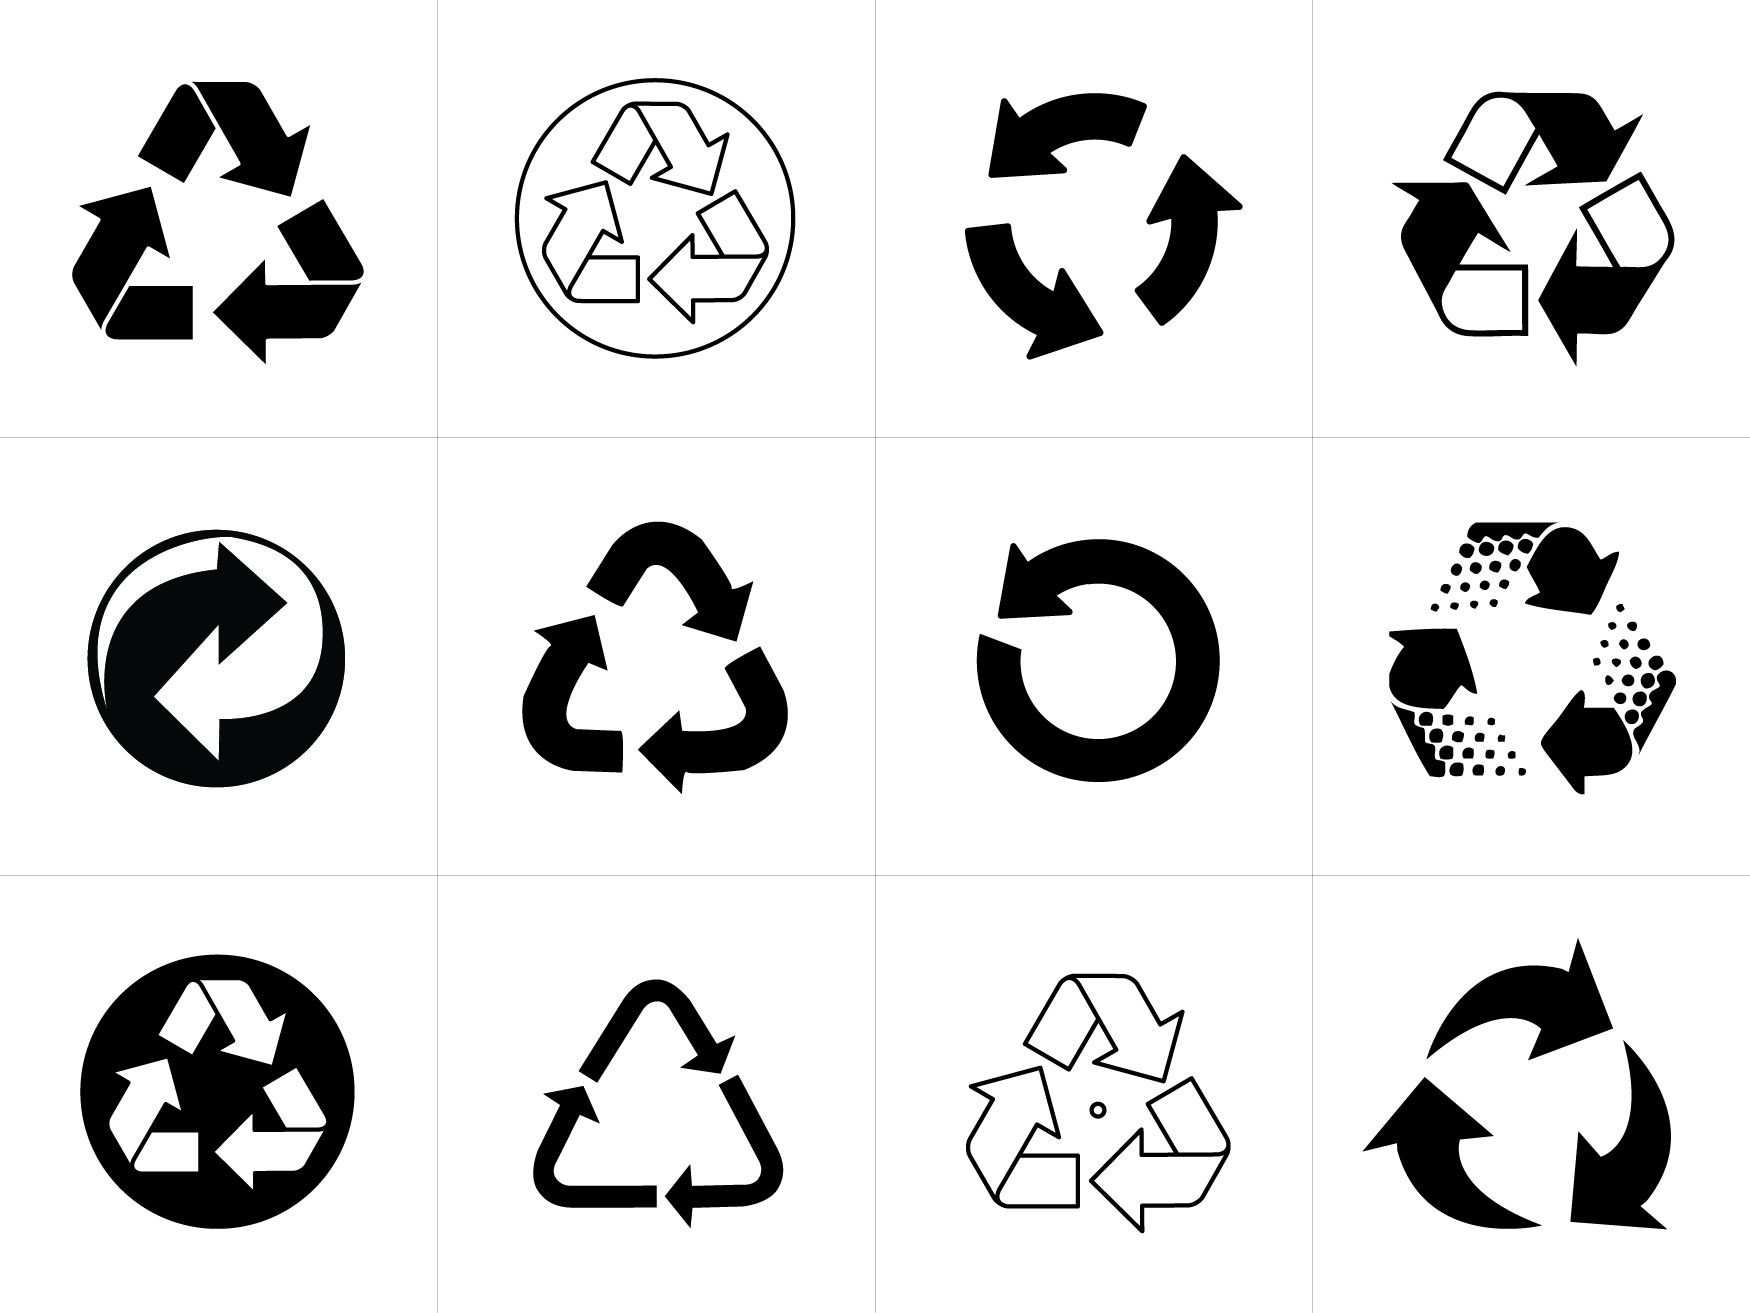 Recycling Symbol Vectors for Download Logo google, Logos